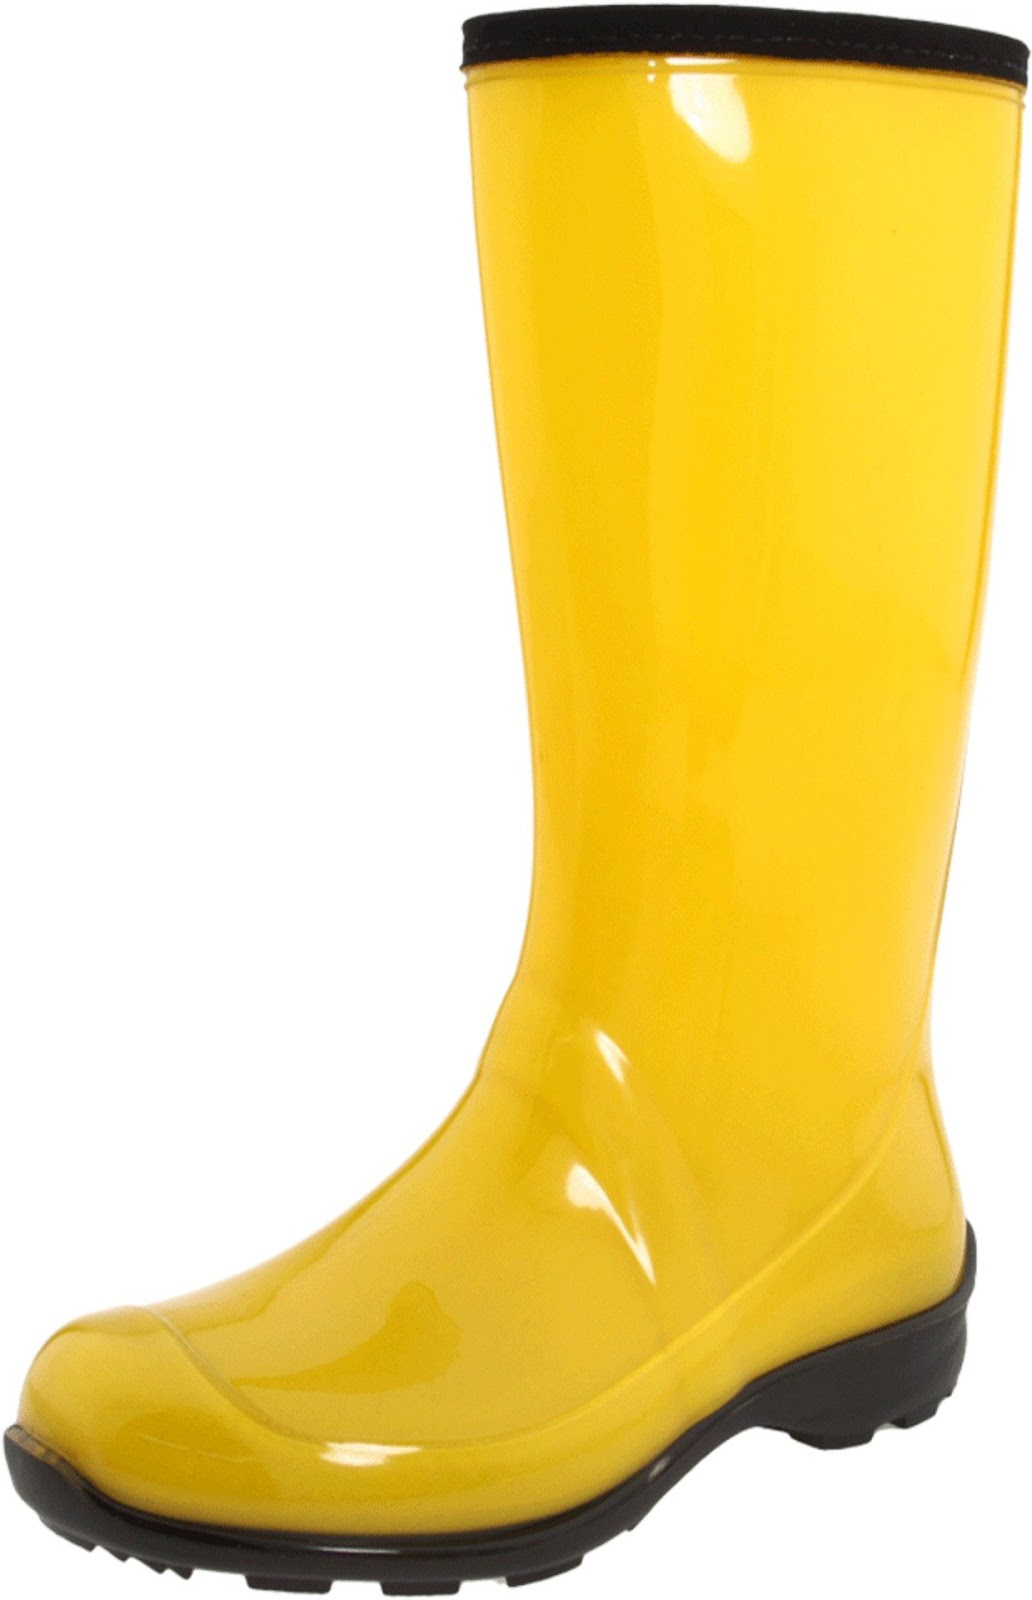 Boot clipart rubber boot. Boots clip art library